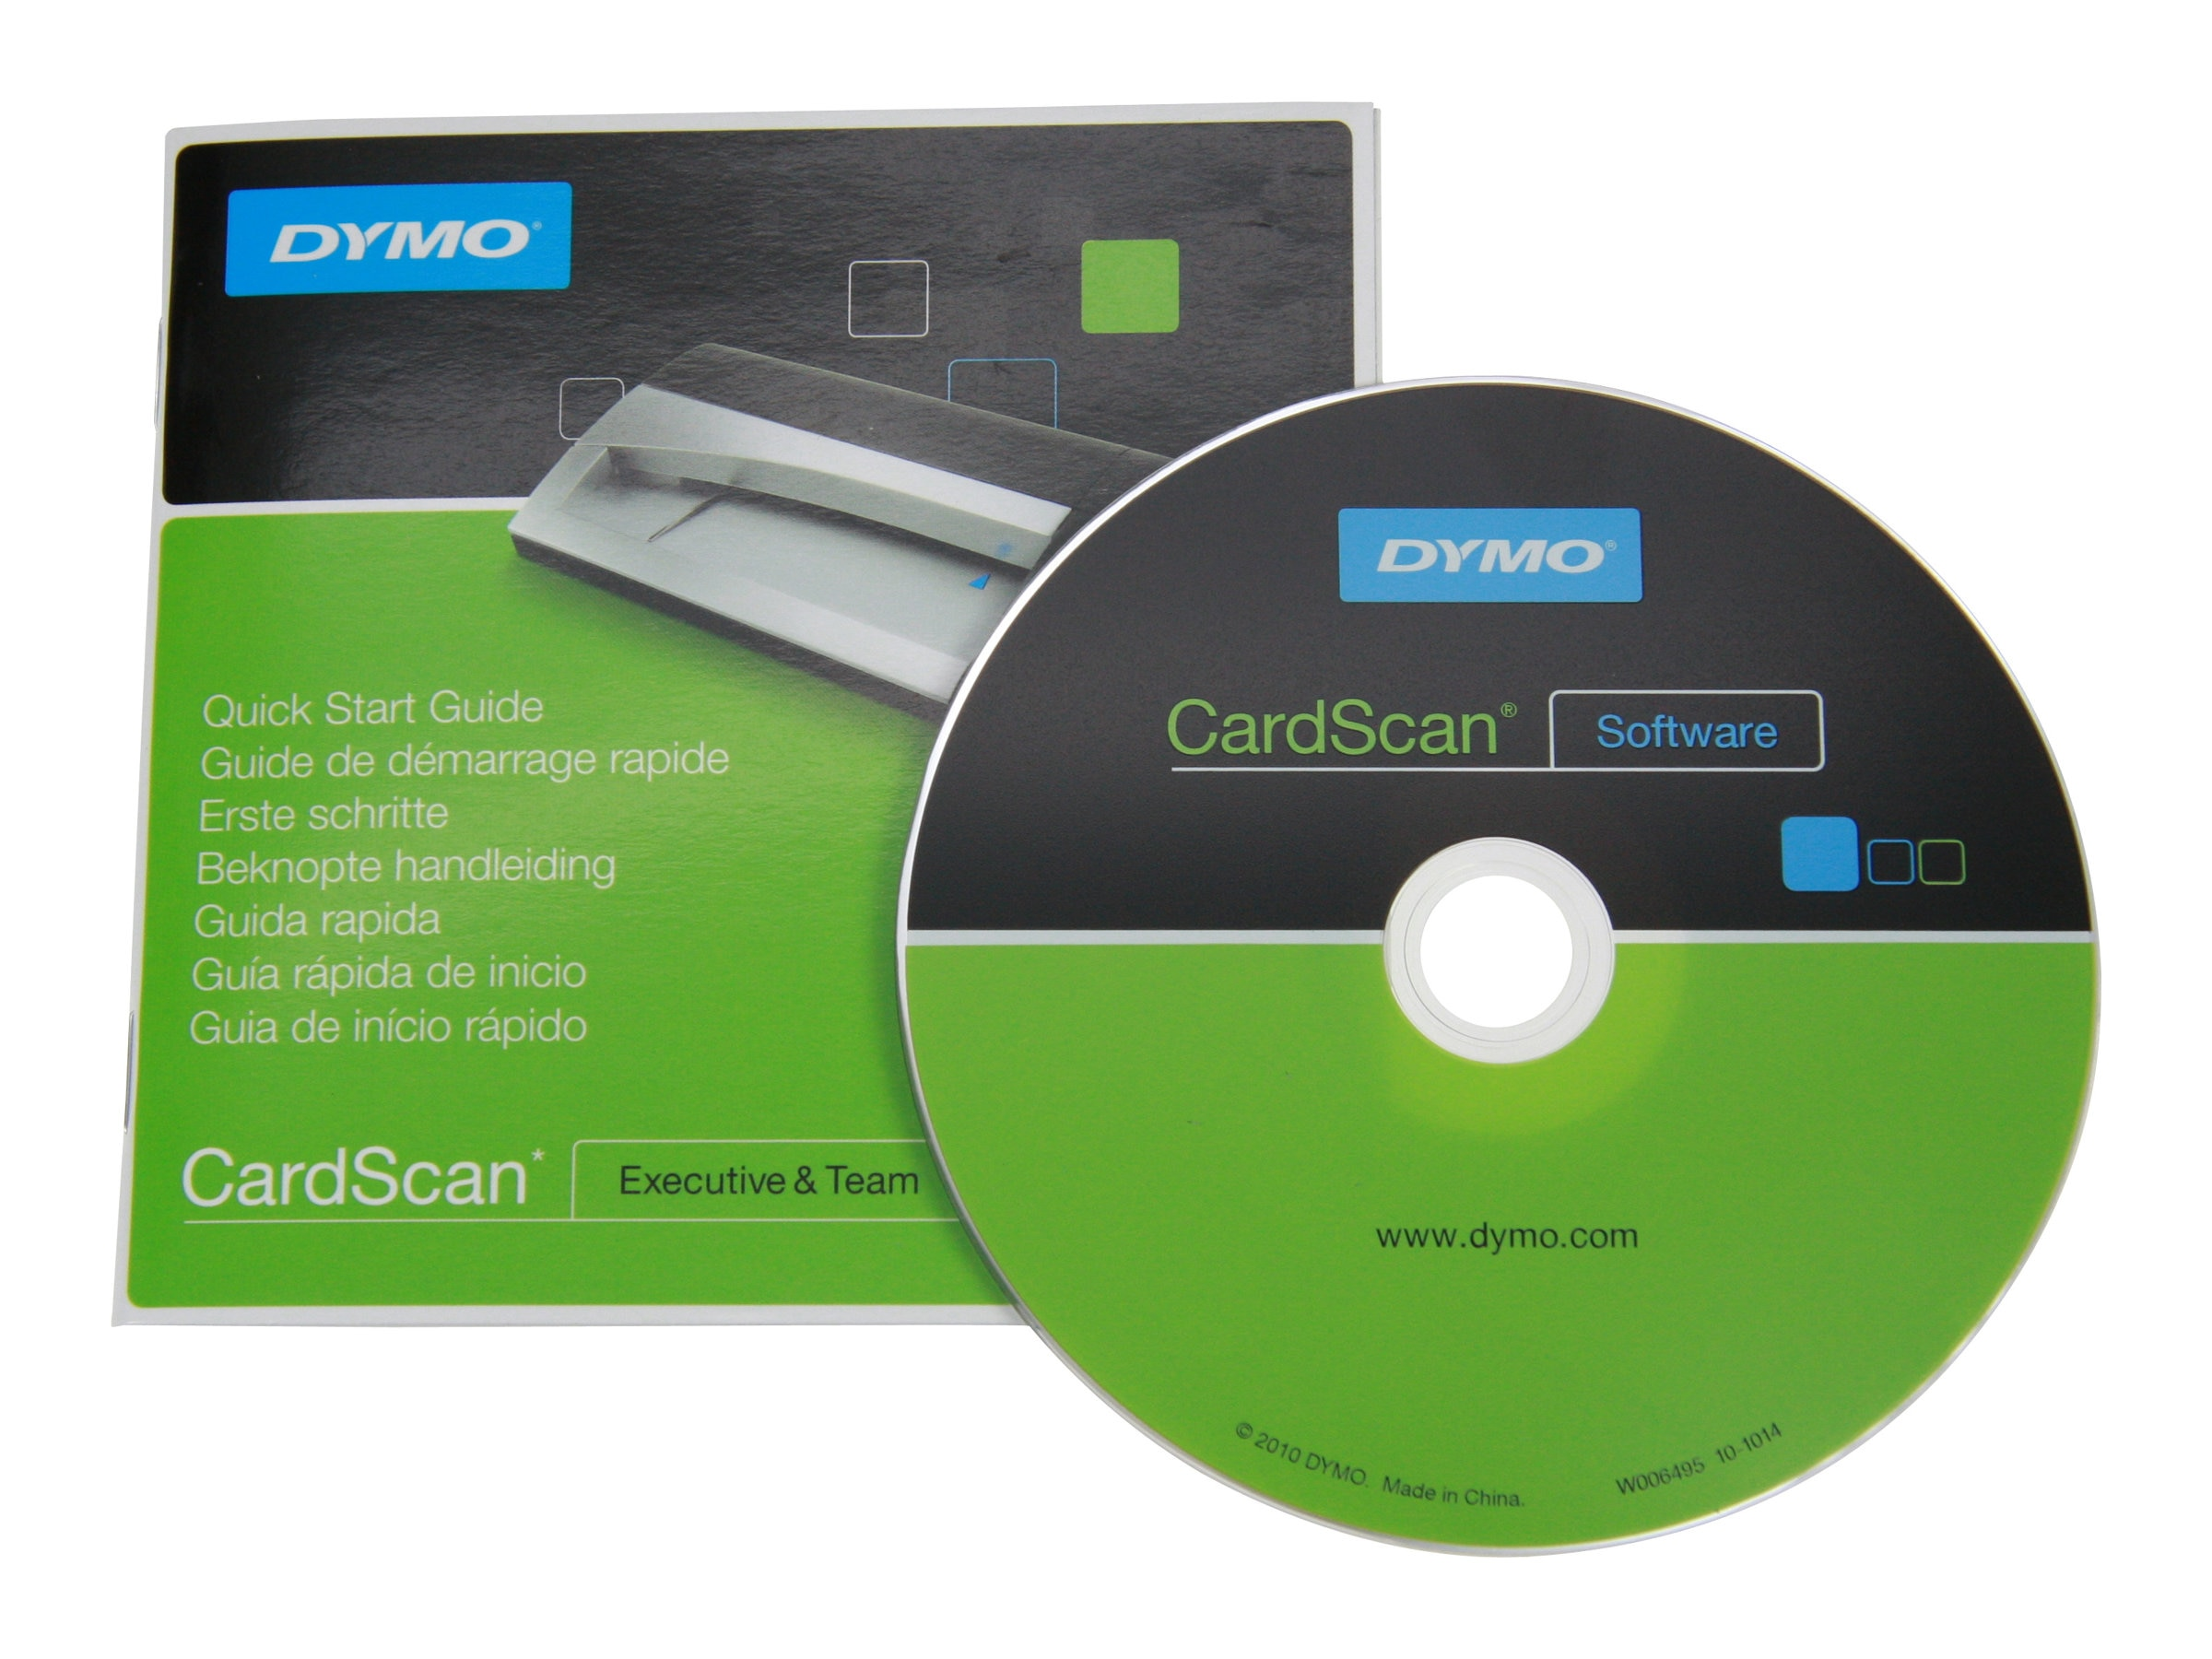 DYMO CardScan Team 9.0 1-user SW CD-ROM